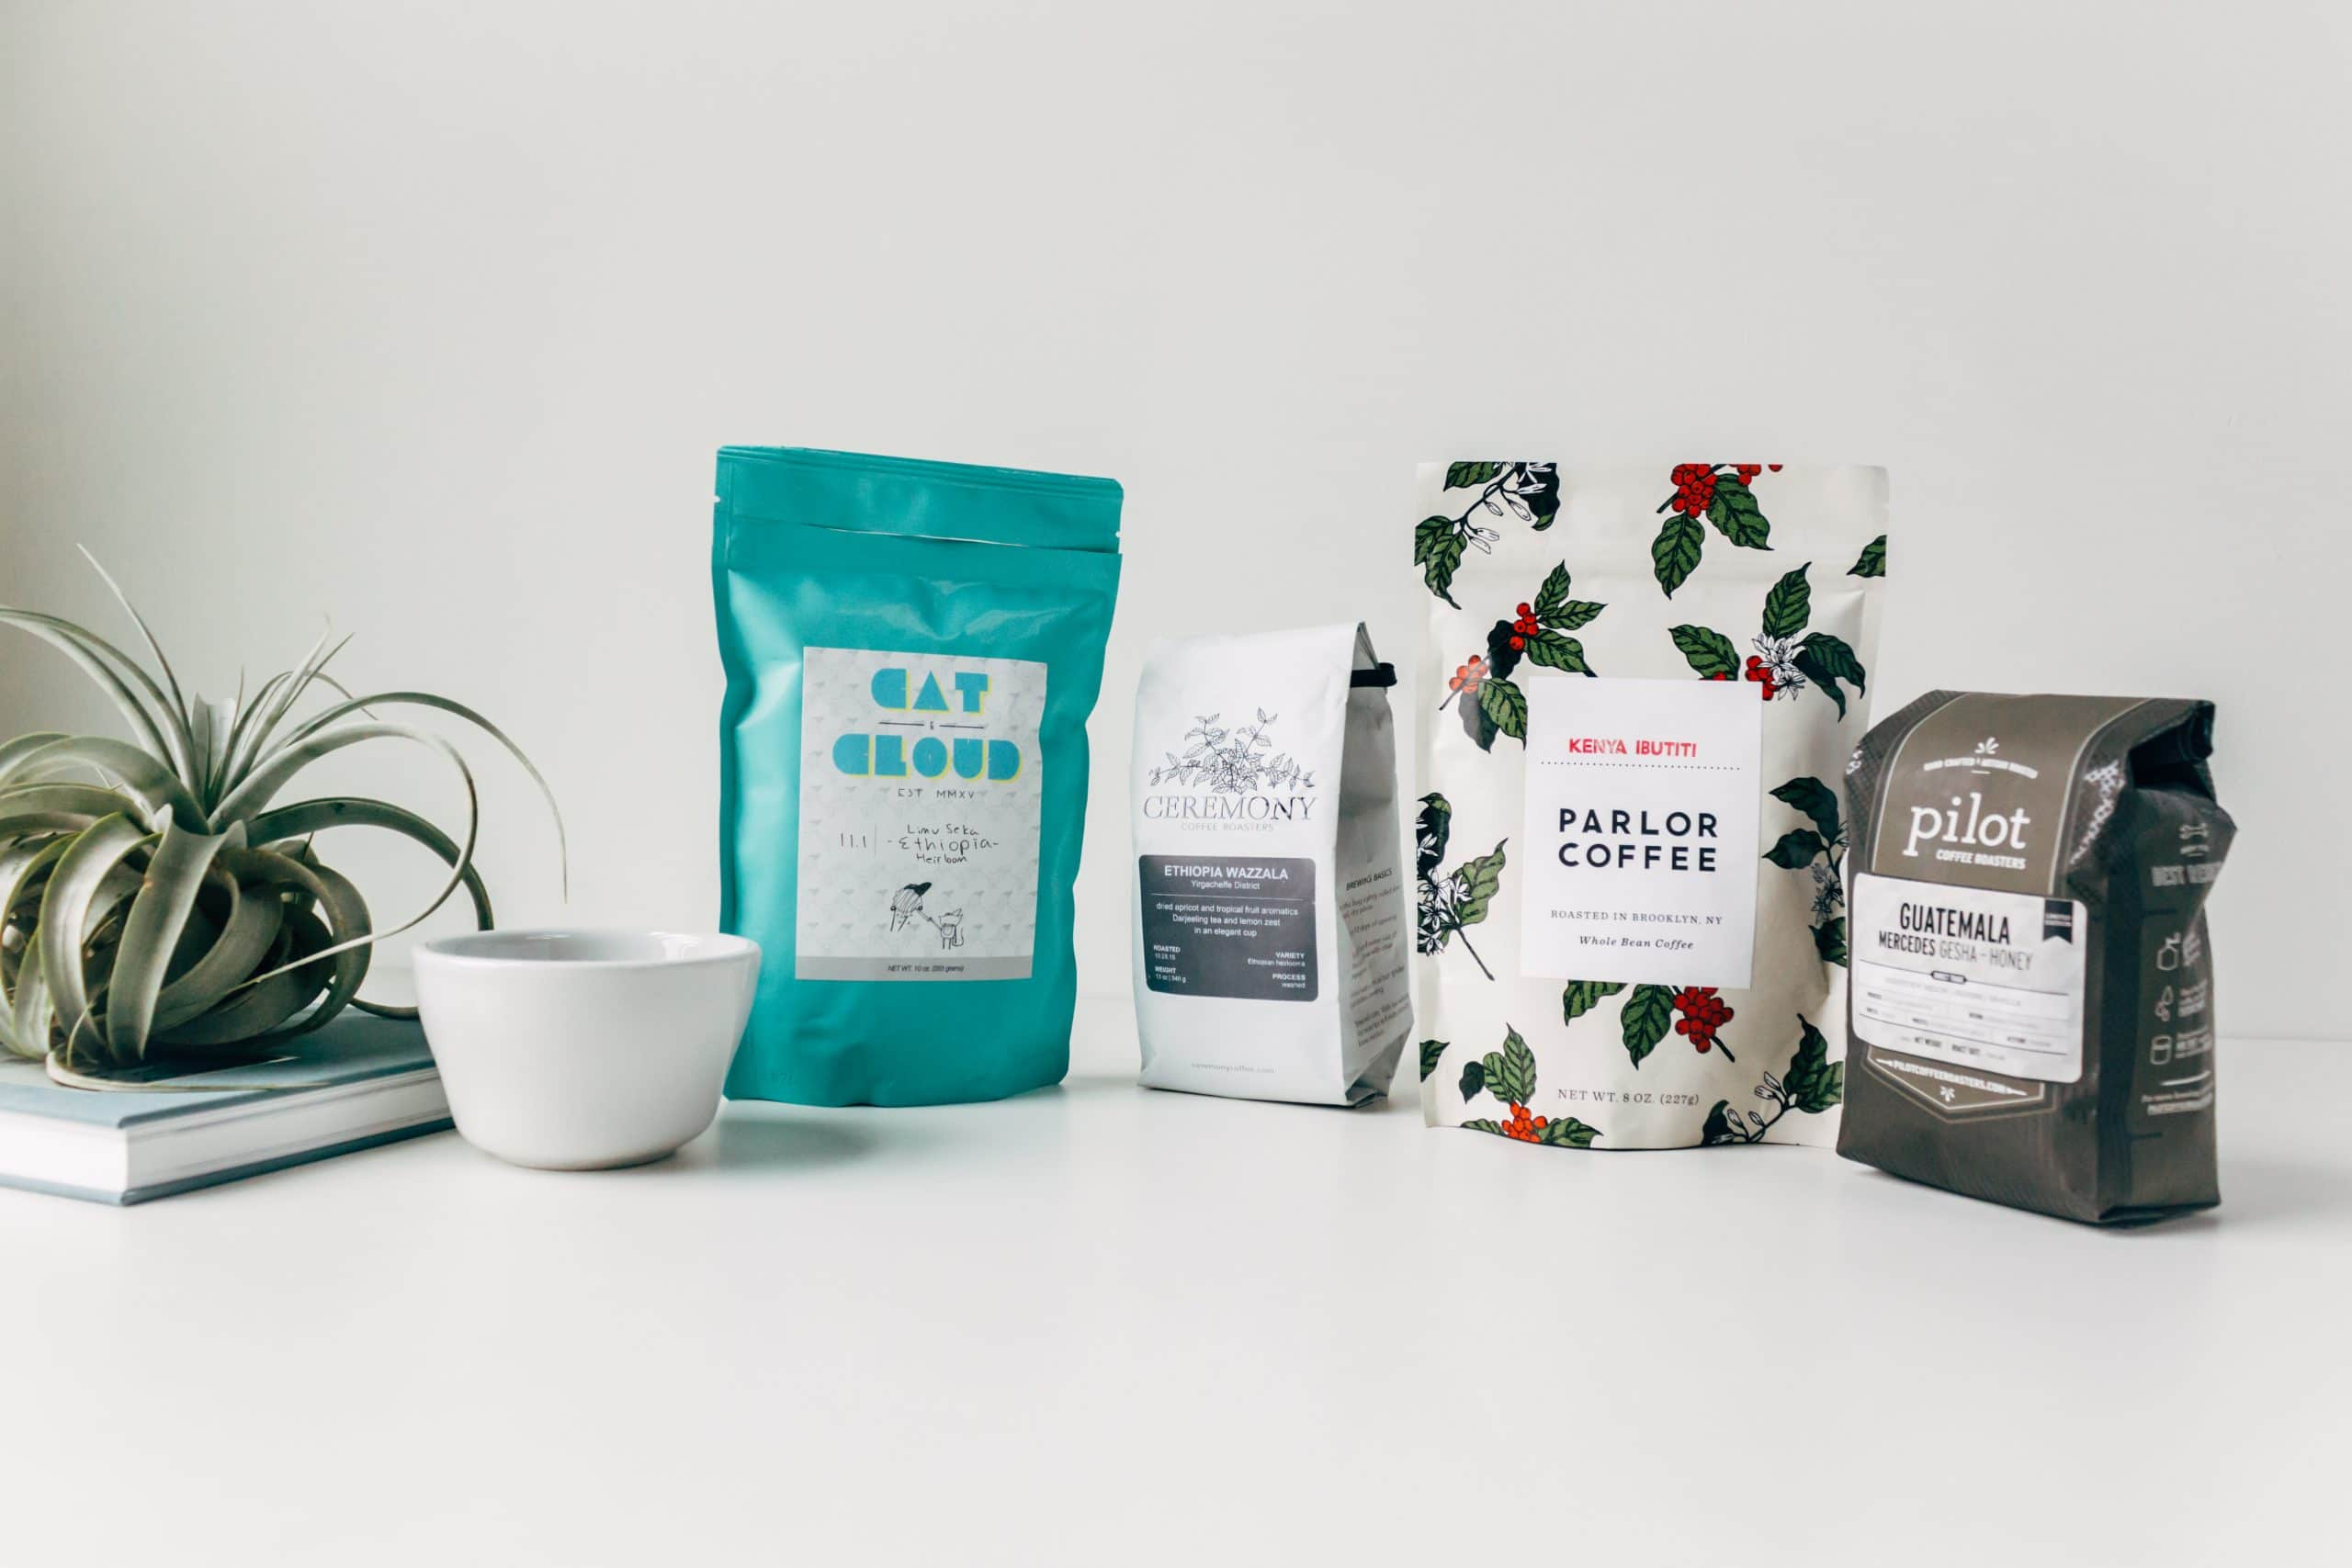 Coffee Brands we discover on Unpacking Coffee